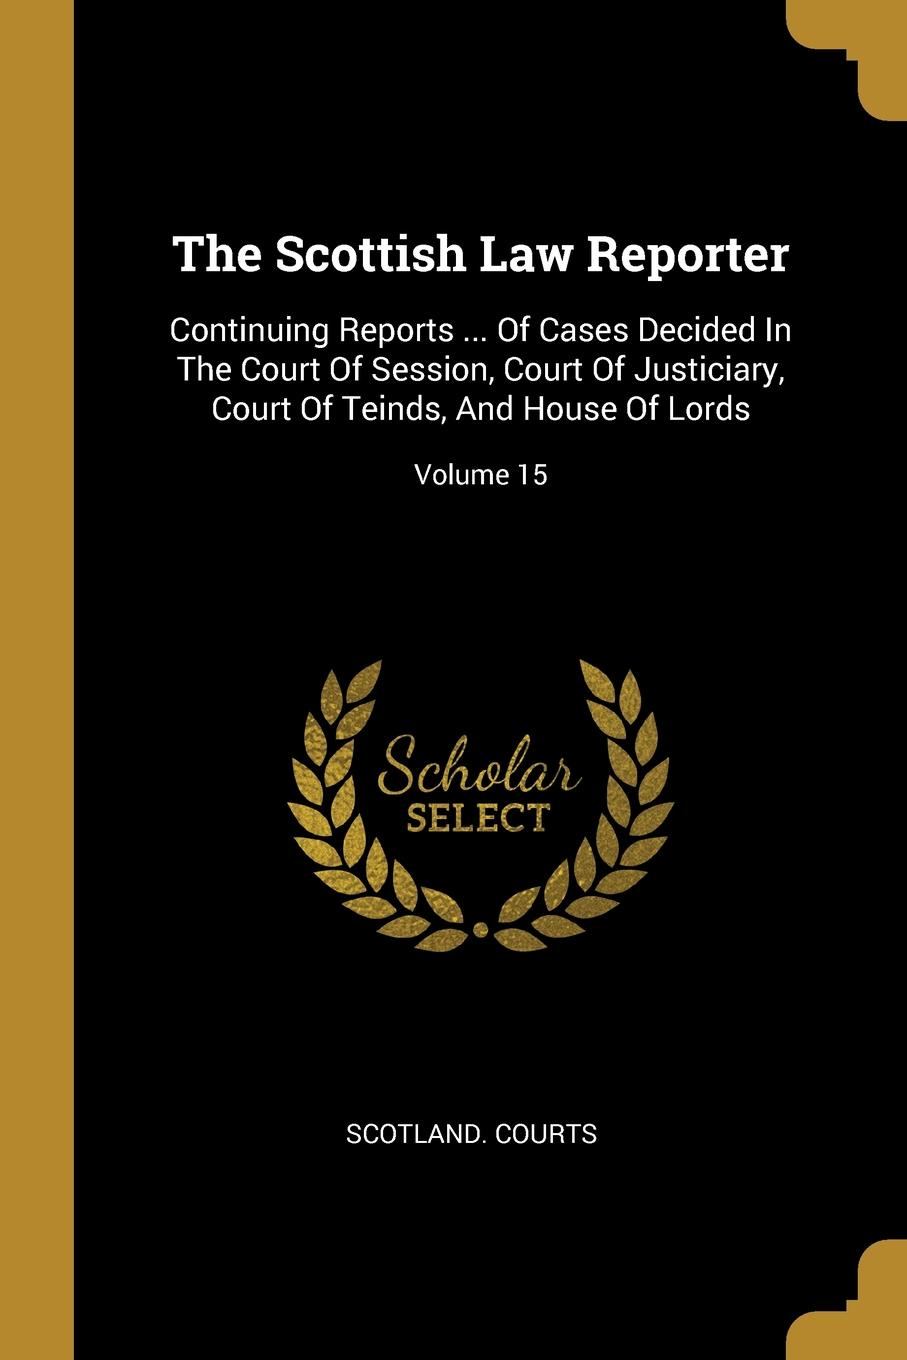 Scotland. Courts. The Scottish Law Reporter. Continuing Reports ... Of Cases Decided In The Court Of Session, Court Of Justiciary, Court Of Teinds, And House Of Lords; Volume 15